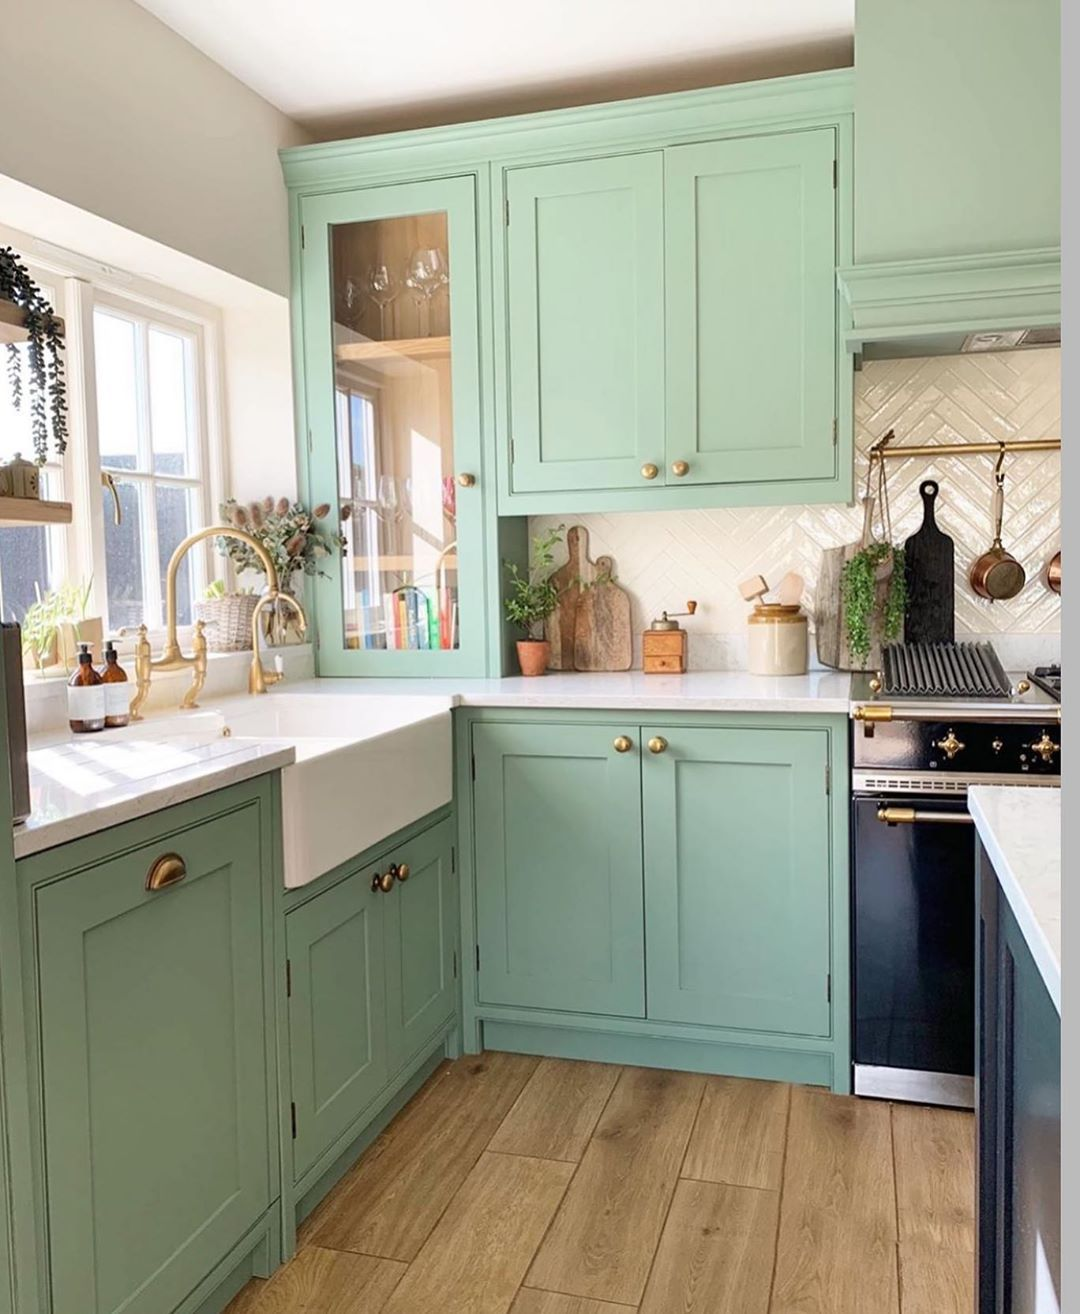 Jan Skacelik On Instagram The Color Of This Kitchen Is Absolutely Fabulous Storiesof Home In 2020 Kitchen Decor Inspiration Home Green Kitchen Cabinets